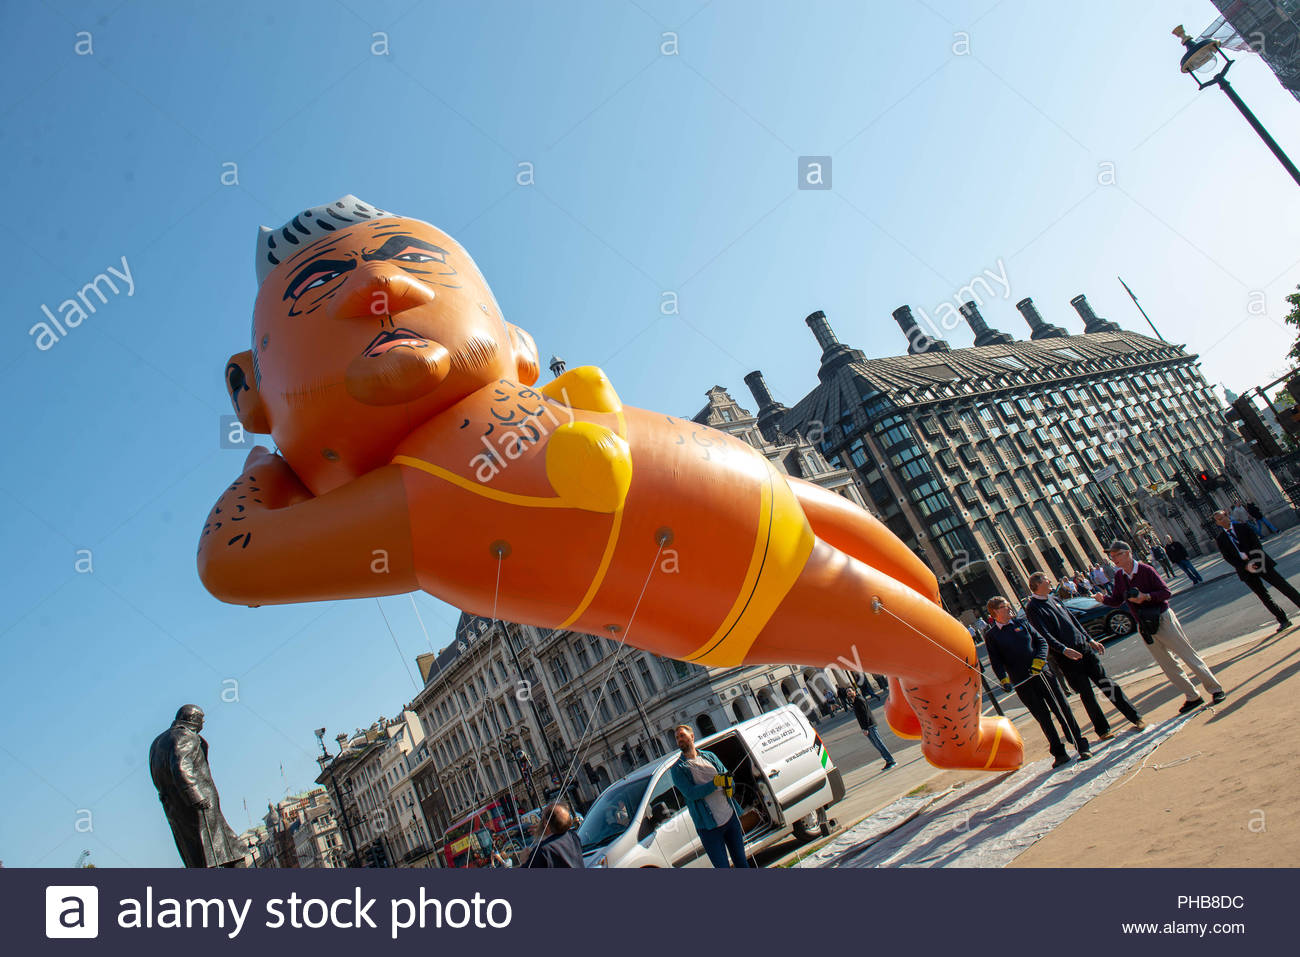 London, UK. 1st September 2018. A blimp of Sadiq Khan wearing a yellow bikini flew over Westminster on Saturday morning. The event is a  response to the Donald Trump baby balloon that the London mayor permitted in July.  Credit: David Nash/Alamy Live News - Stock Image